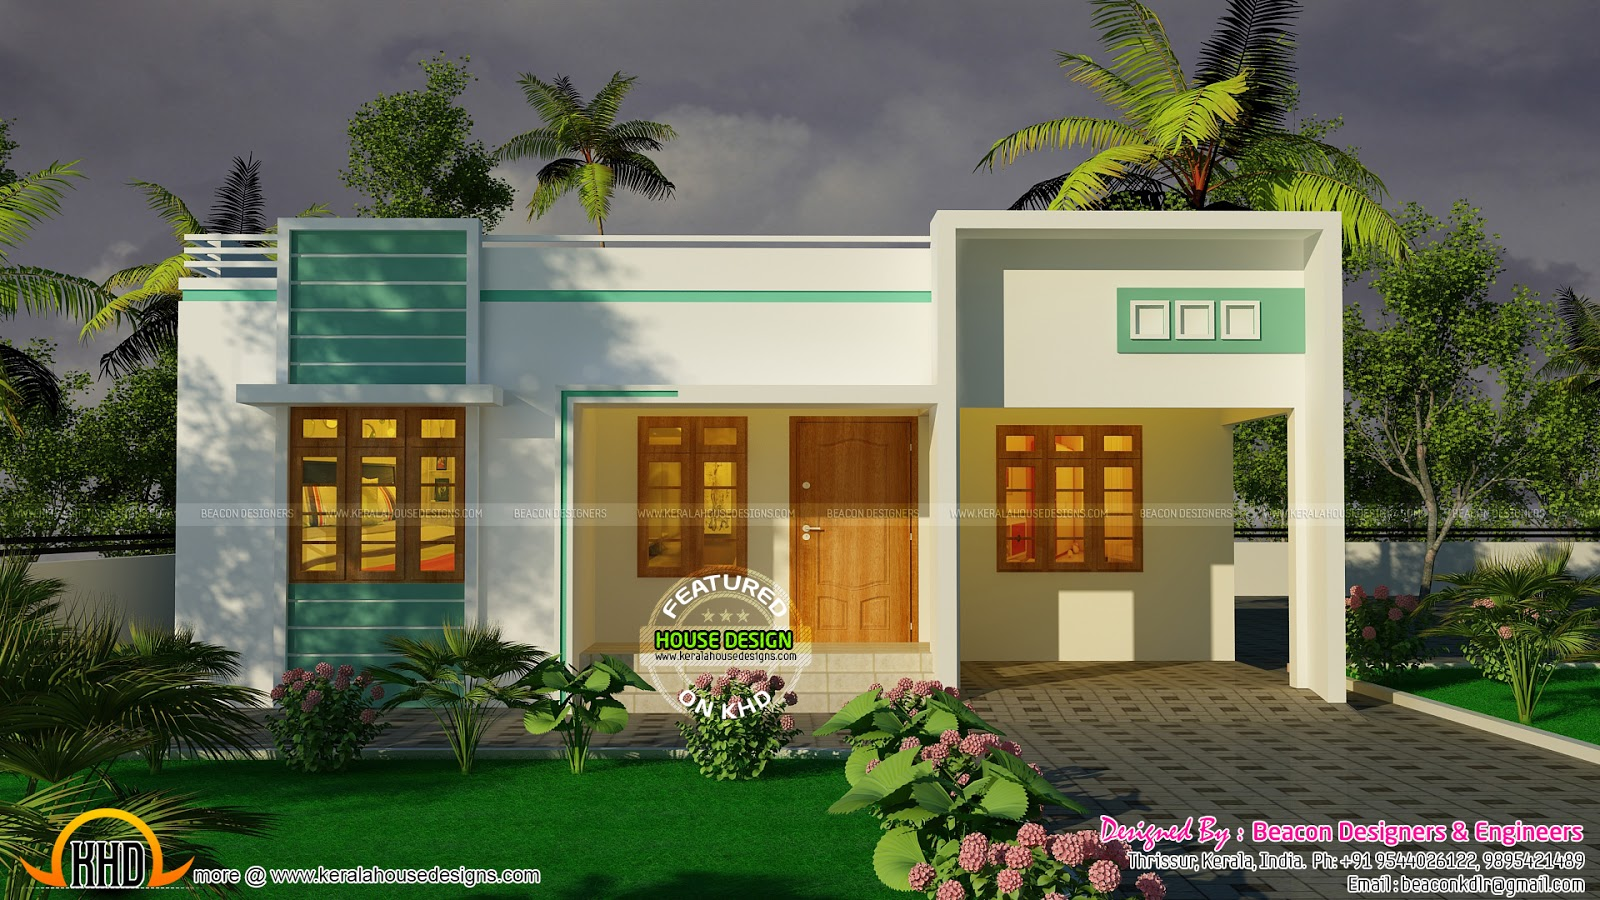 3 bedroom small budget house plan kerala home design and colorful exotic and bold lines define the mediterranean